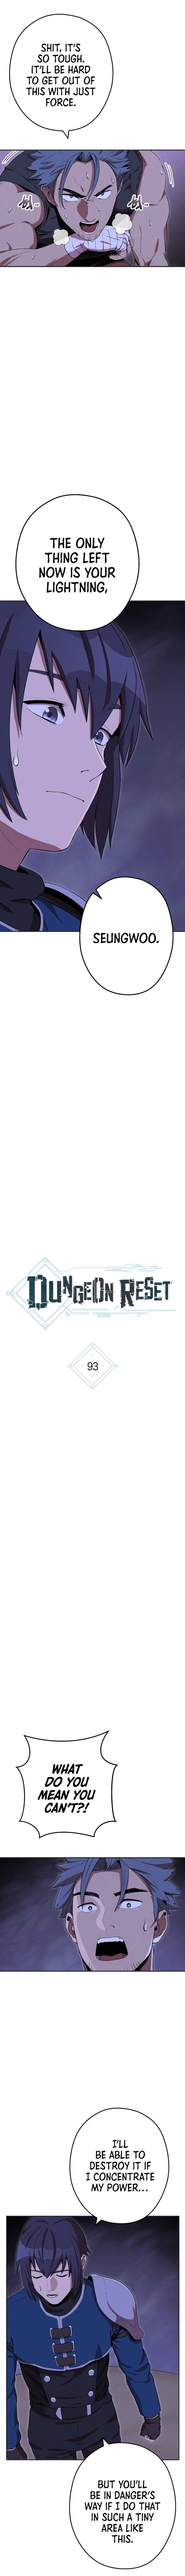 Dungeon Reset - chapter 93 - #3